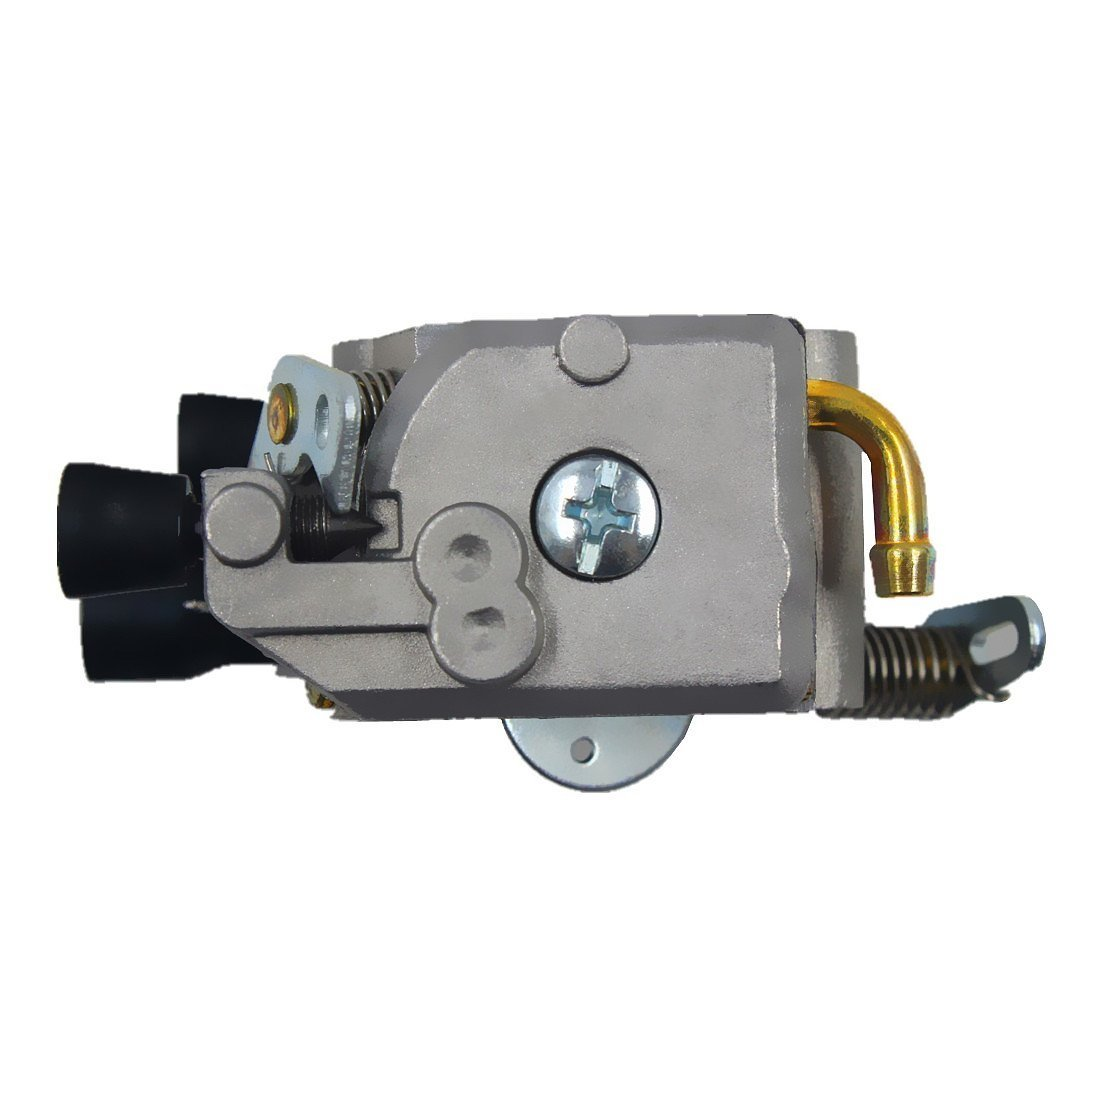 Carburetor With Gasket Fuel Line Oil Spark Plug Filter Stihl Ms 441 Diagram 028 Chainsaw 025 New For Ms210 Ms230 Ms250 021 023 Replaces Zama C1q S11e